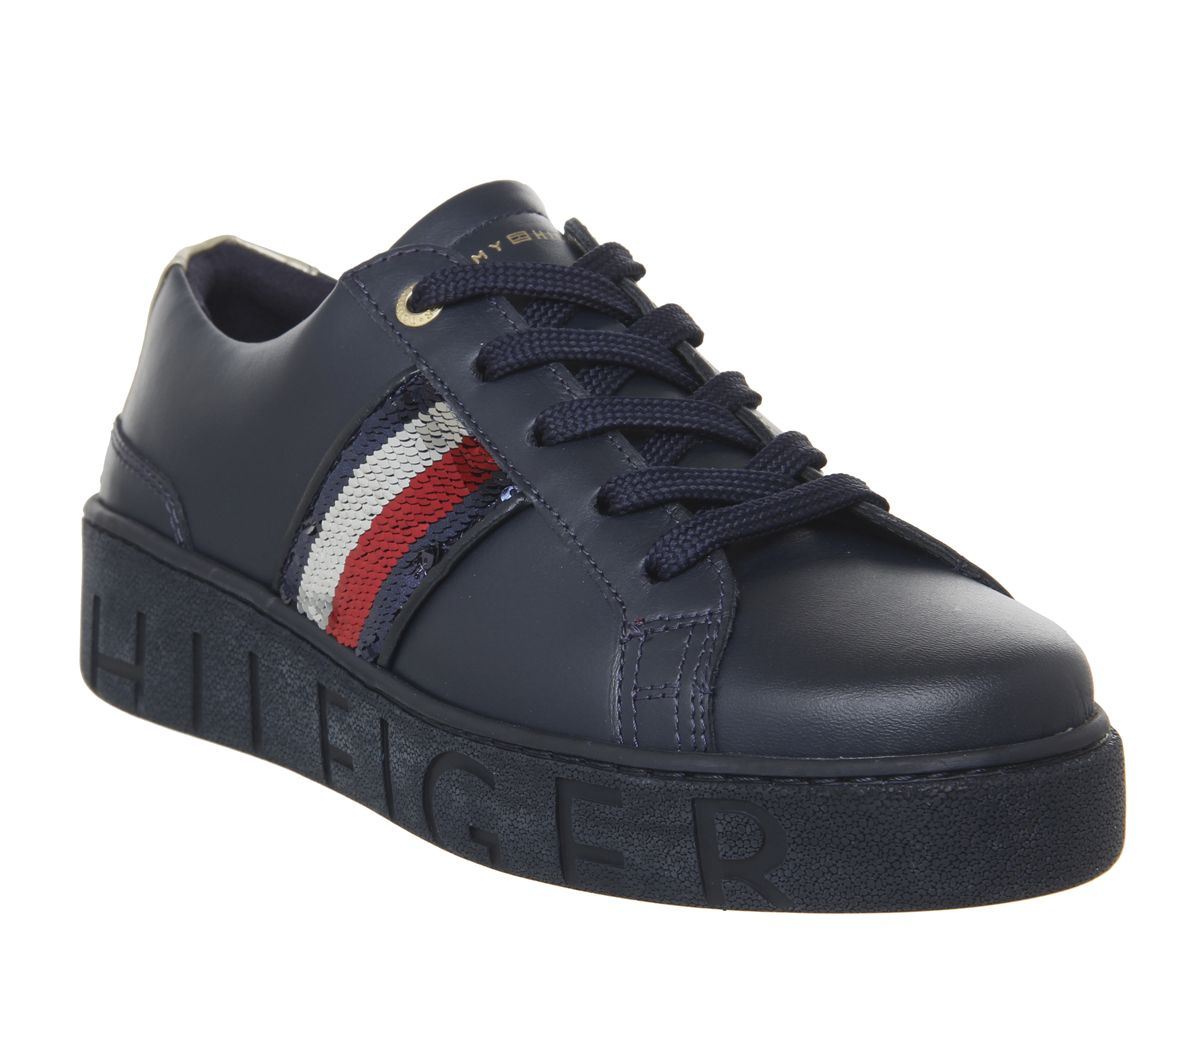 63f00b2a7 Tommy Hilfiger Sequins Fashion Sneakers Midnight - Hers trainers